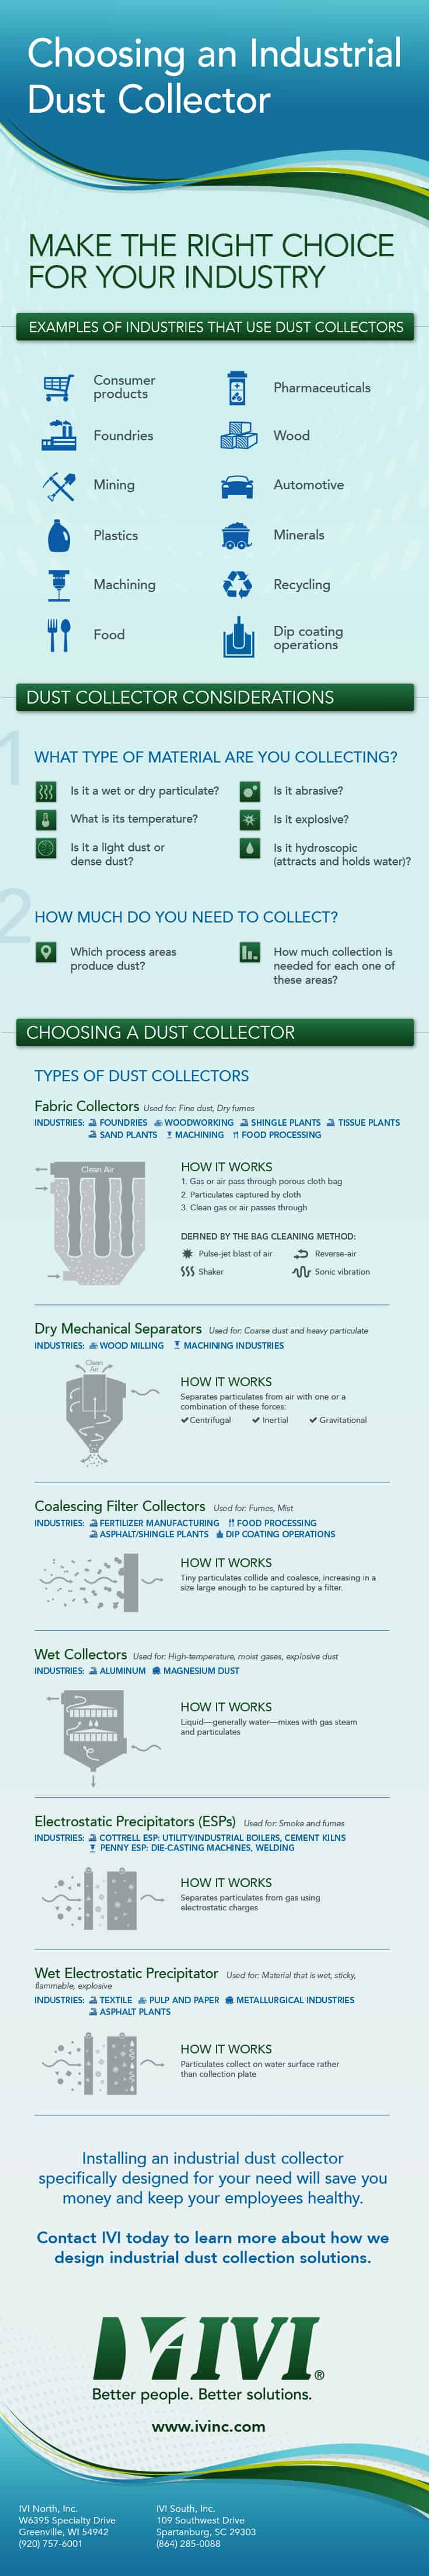 IVI_DustCollector_Infographic_FNL